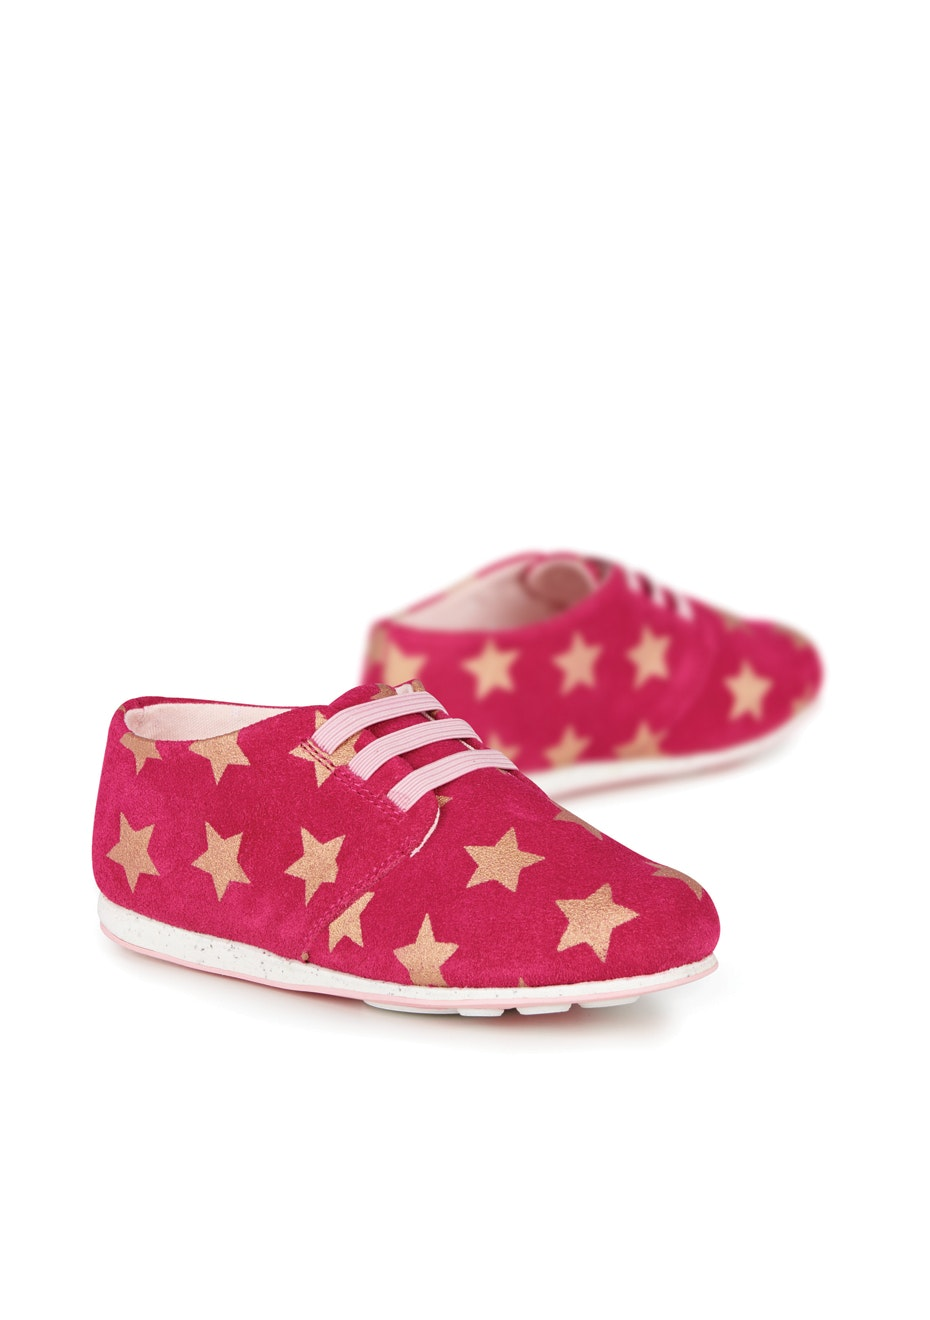 Emu - Star Sneaker - Hot Pink